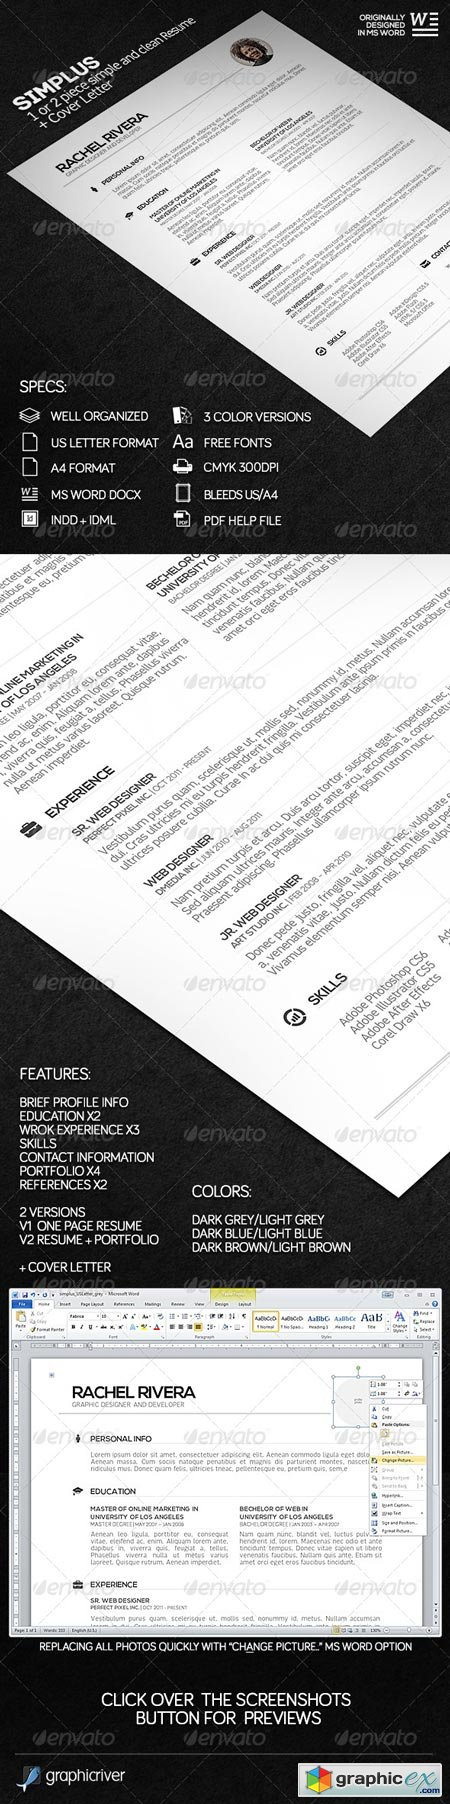 SIMPLUS - 1 or 2 Piece Simple and Clean Resume 7238629